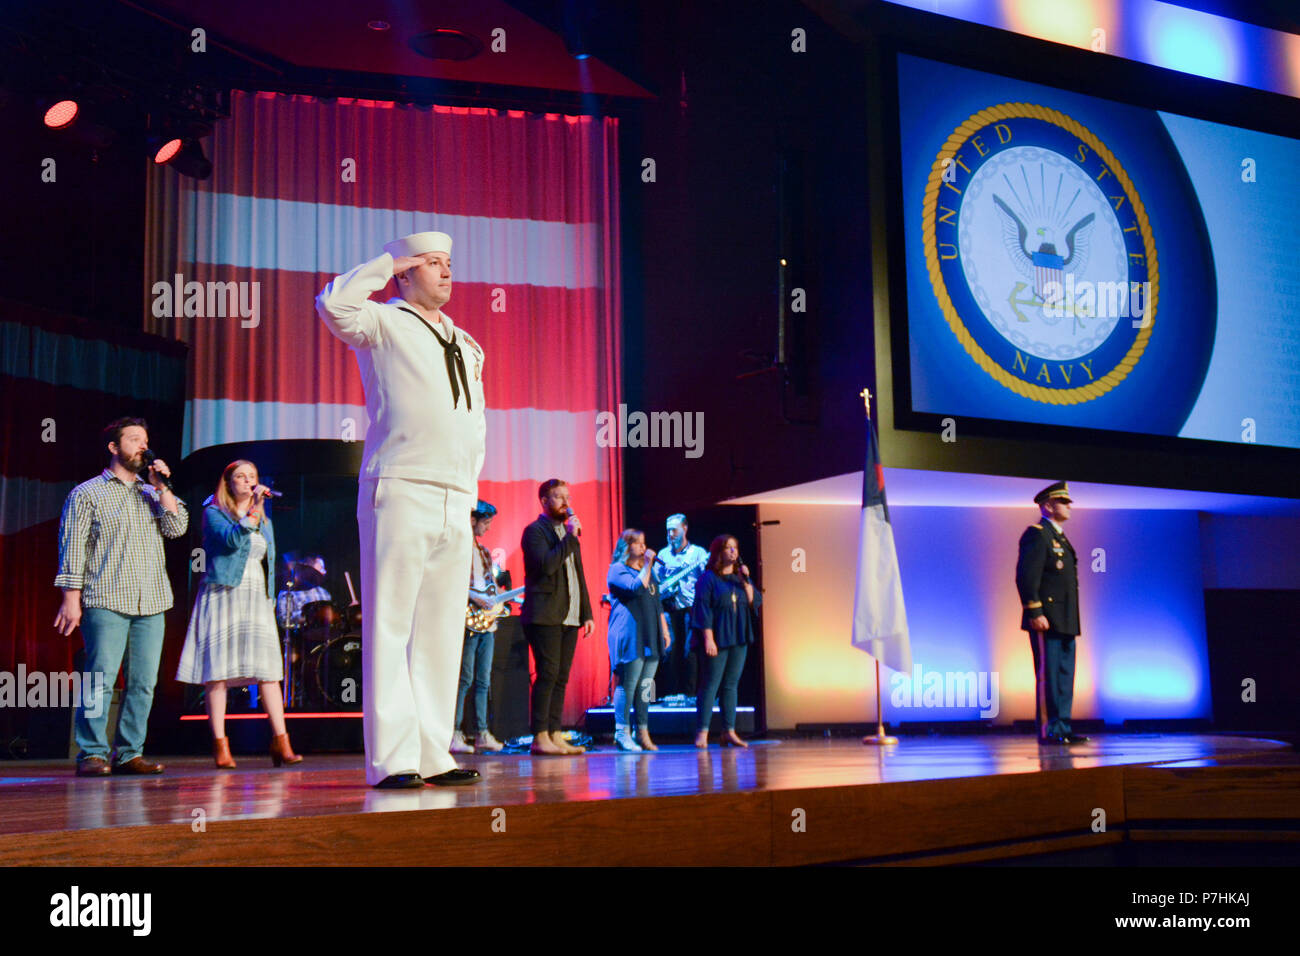 180701-N-CO784-020 PROSPER, Texas (July 01, 2018)  Damage Controlman 1st Class Sergiu Cretu,     attached to Navy Recruiting District Dallas, epresents the Navy during a Military Appreciation church service at Prestonwood Baptist Church.  Members from each branch of service was honored at the service.  Each branch of the Armed Forces  was represented with their respected service song. (U.S. Navy photo by MCSN Nolan Pennington/Released) - Stock Image